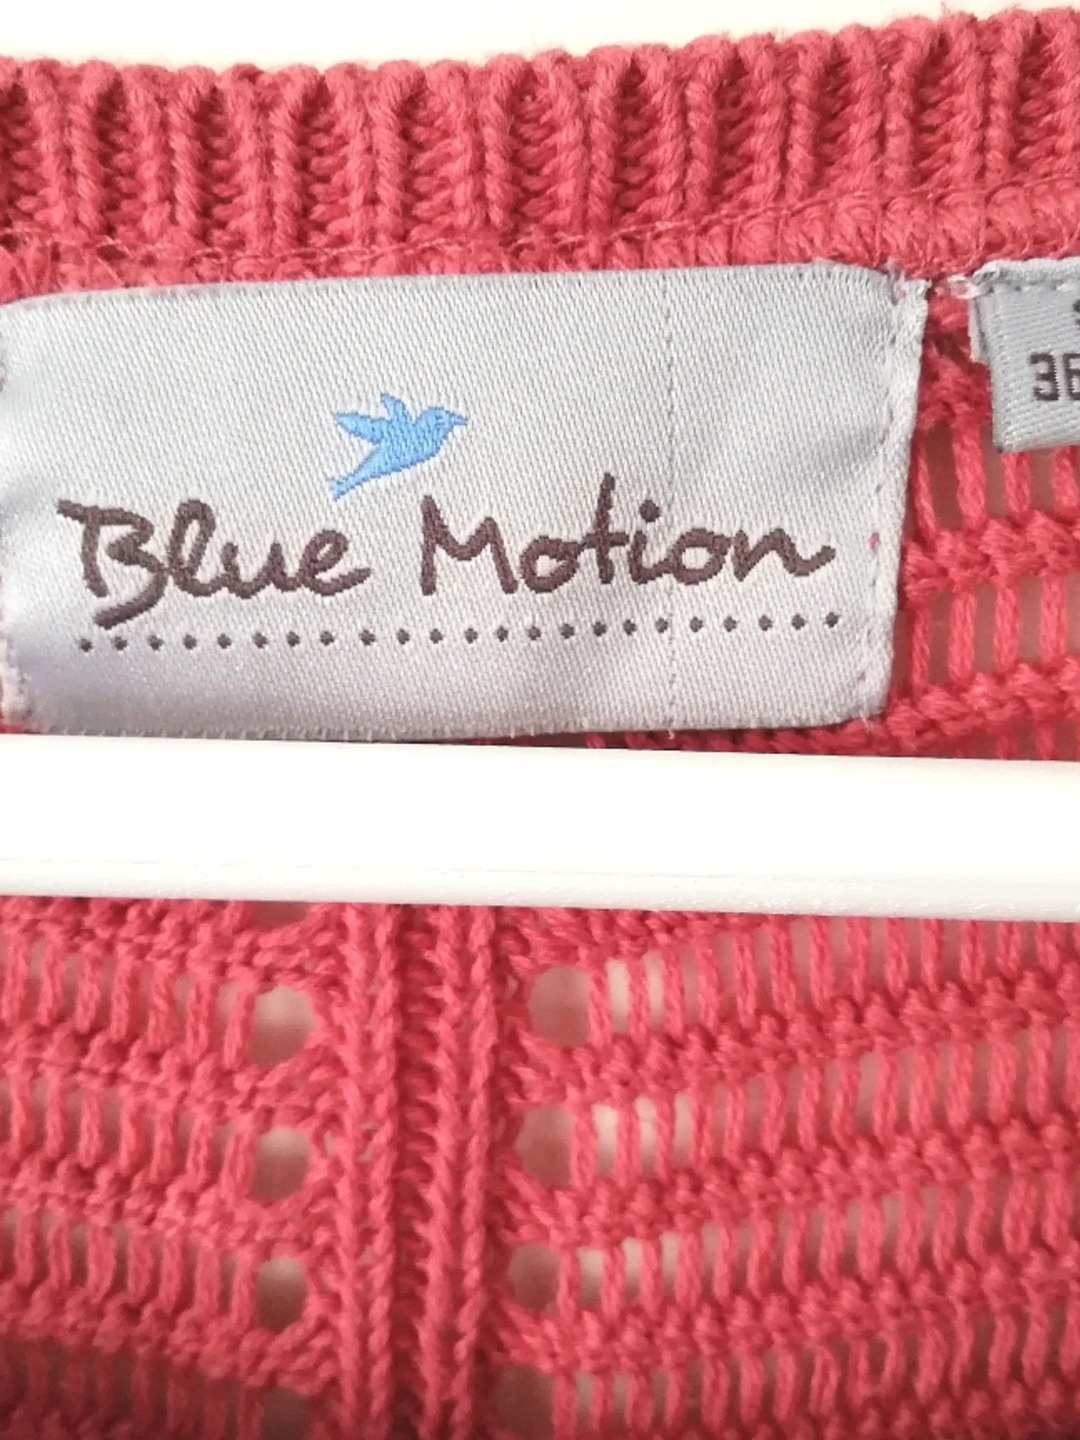 Women's jumpers & cardigans - BLUE MOTION photo 3